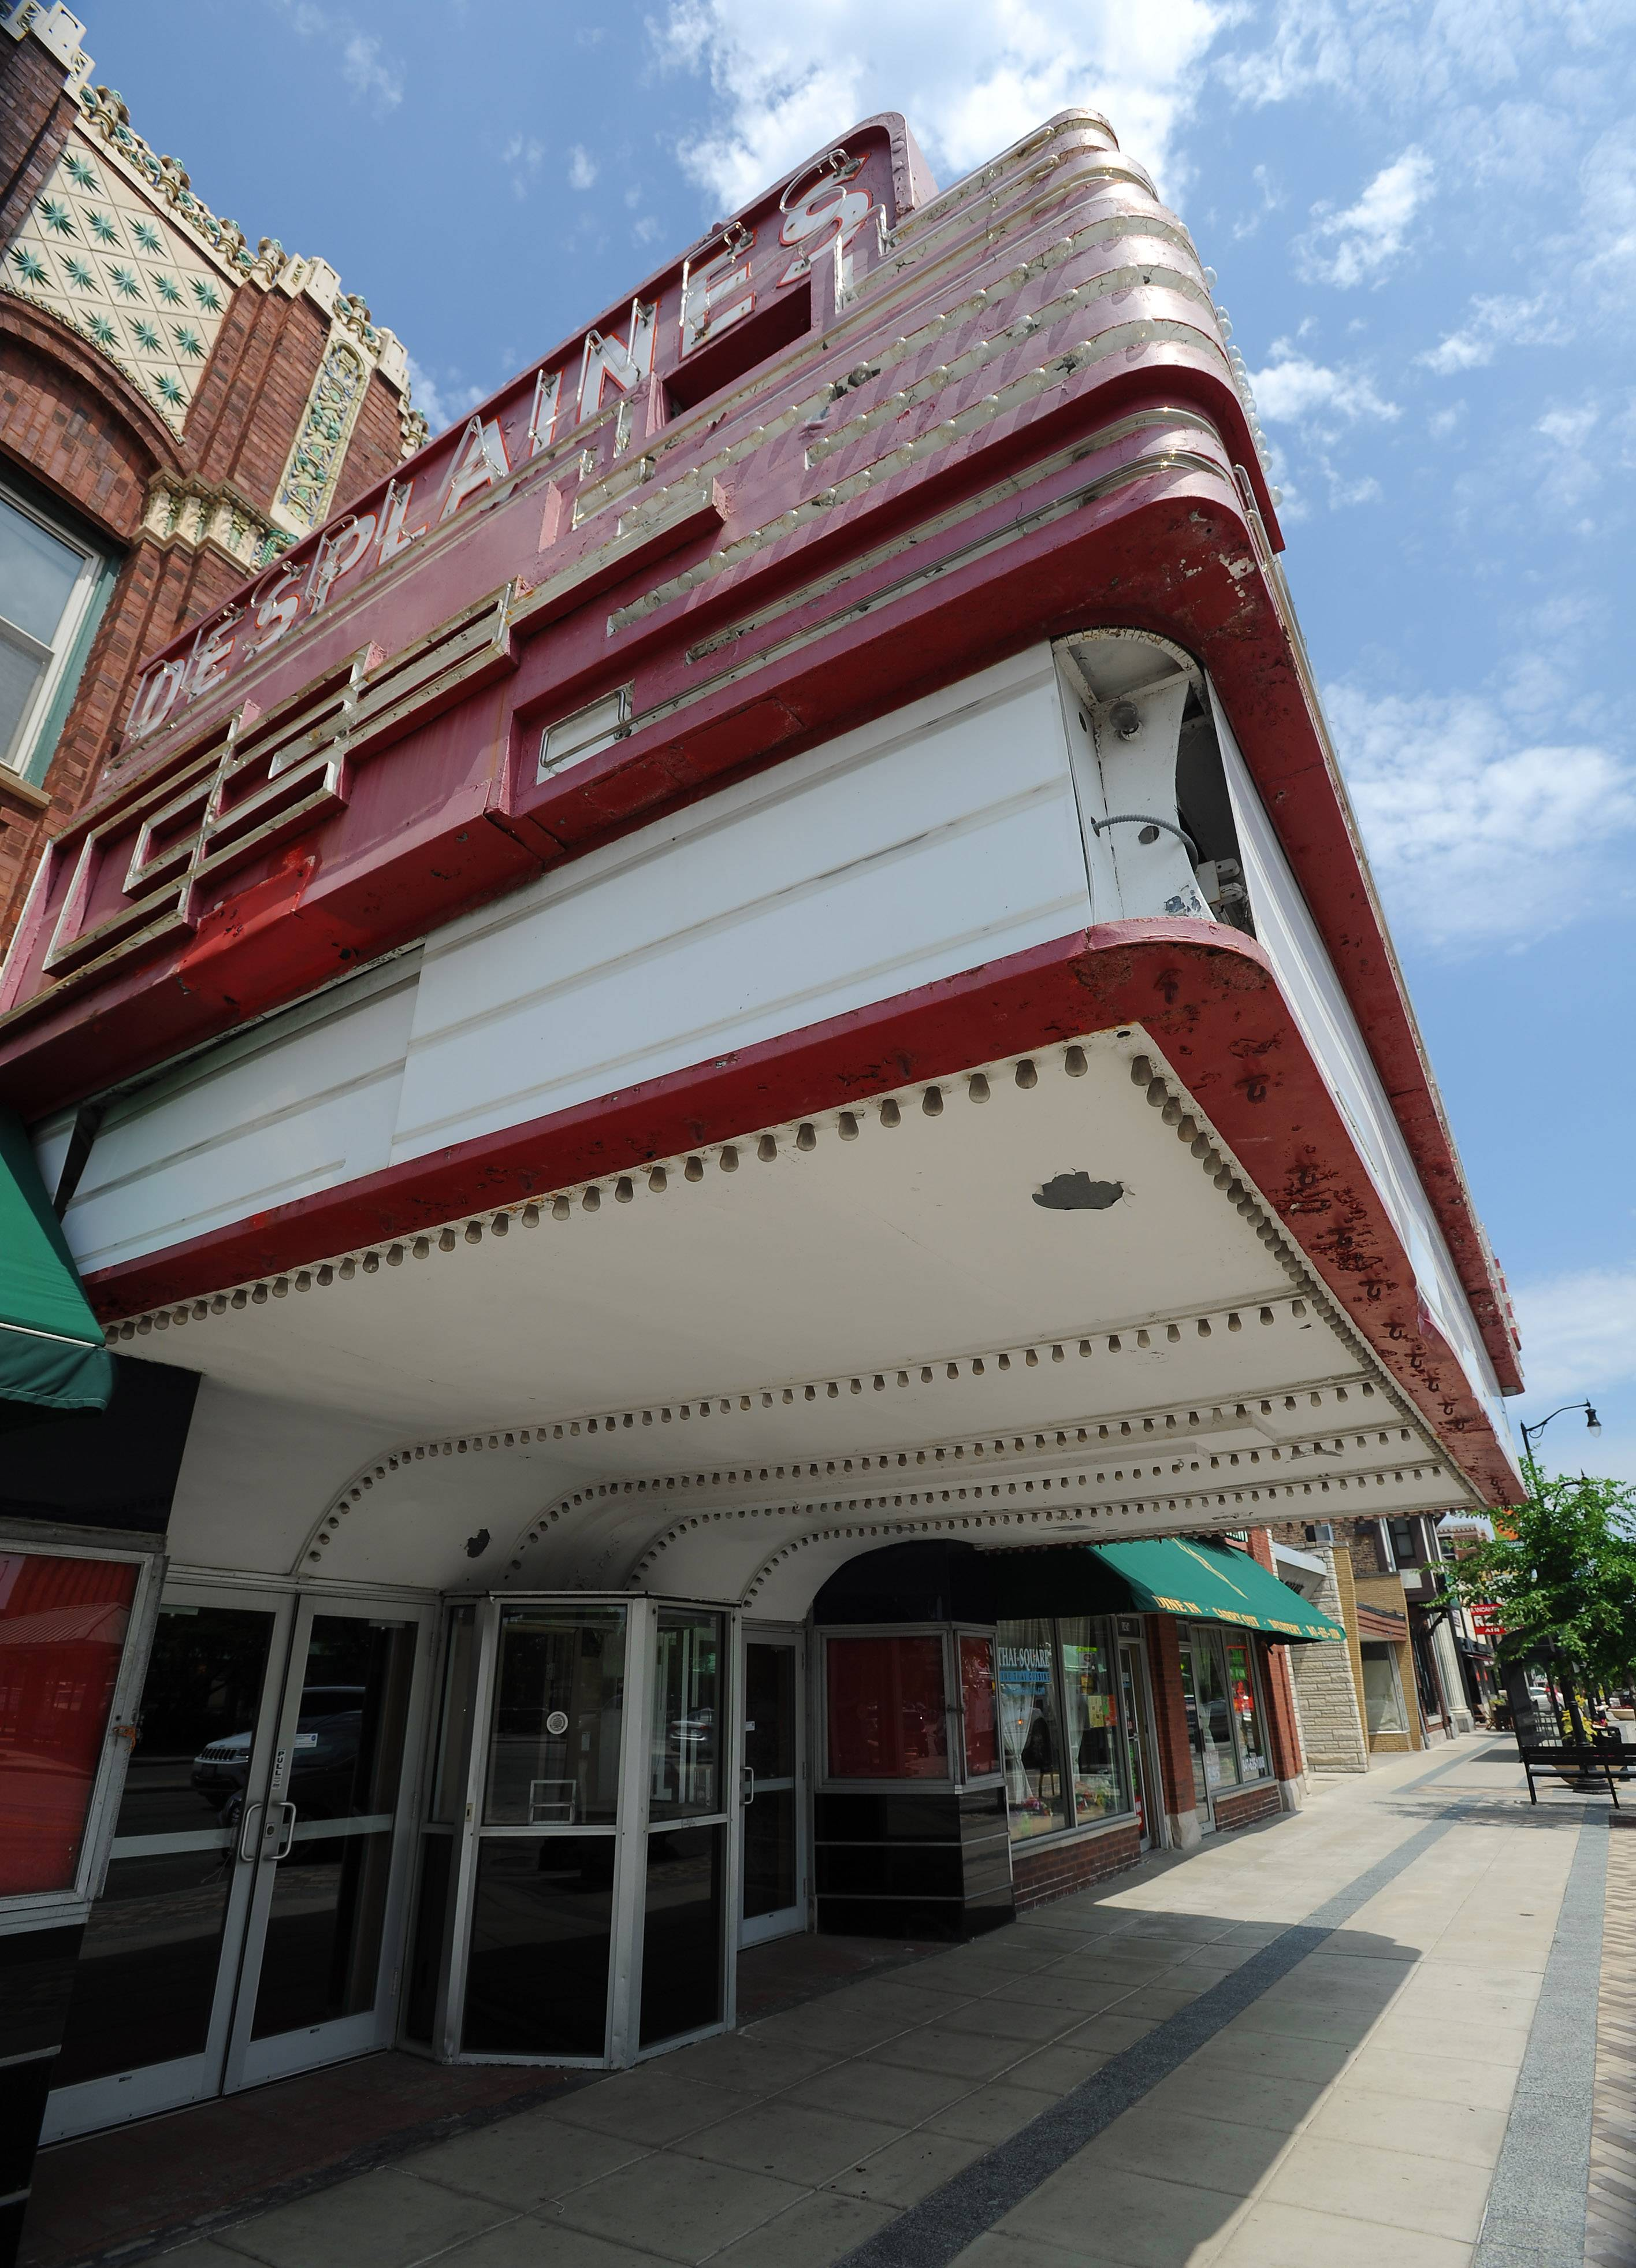 The city of Des Plaines plans to begin eminent domain proceedings to acquire the Des Plaines Theatre at 1476 Miner St. as part of a downtown redevelopment plan.